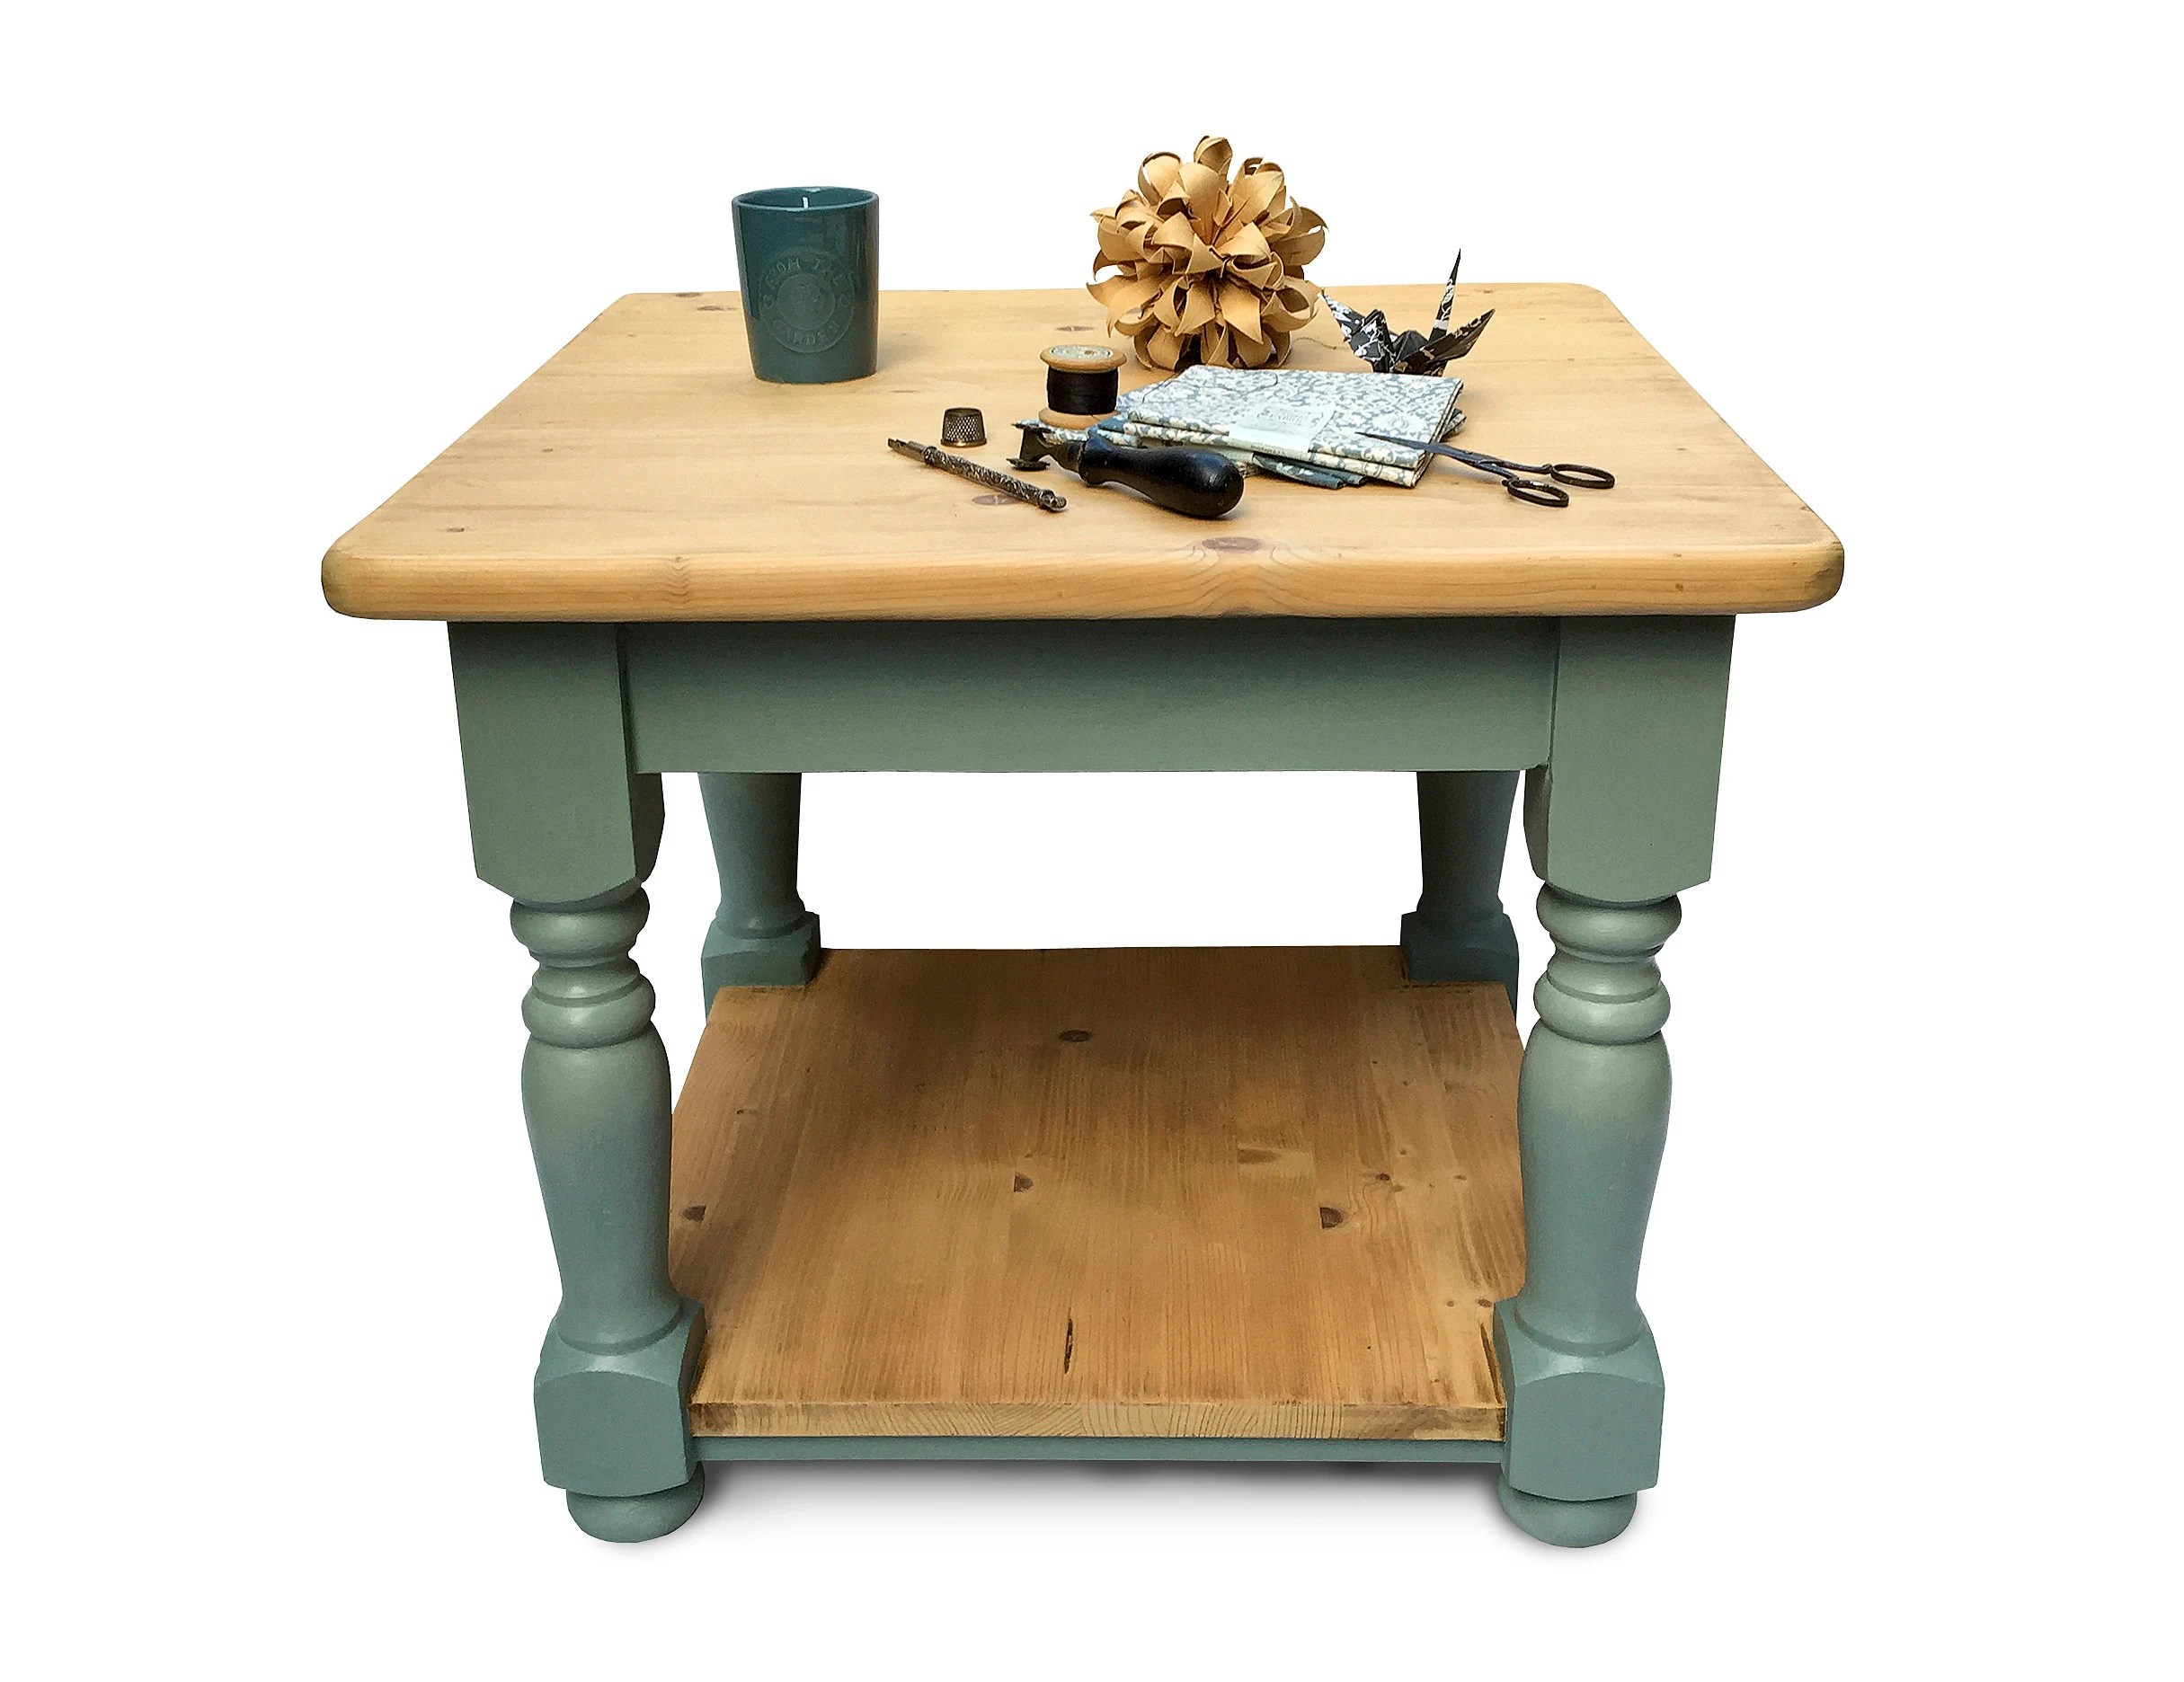 antique pine farmhouse coffee table with turned wood ombre blue painted legs two tier square elegant housewarming gift interior styling